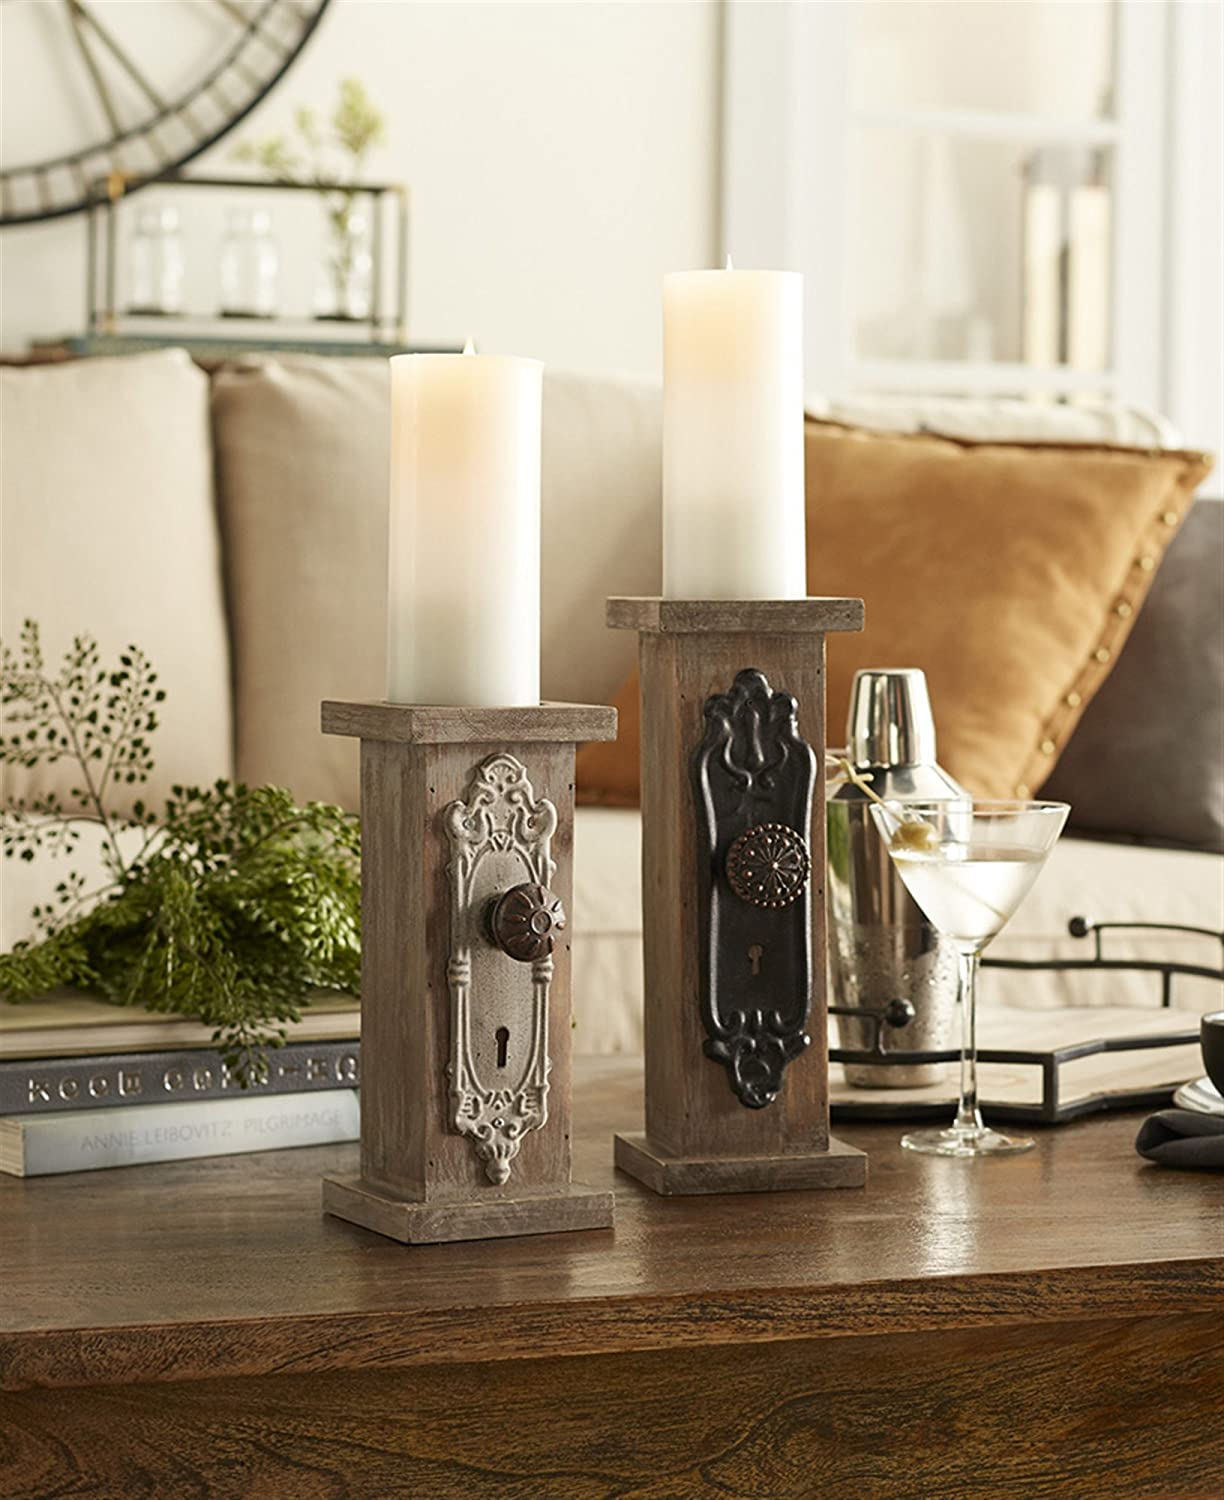 Melrose Lowest price challenge International 66519 Outstanding Door Knob Set Candle 2 of Holders